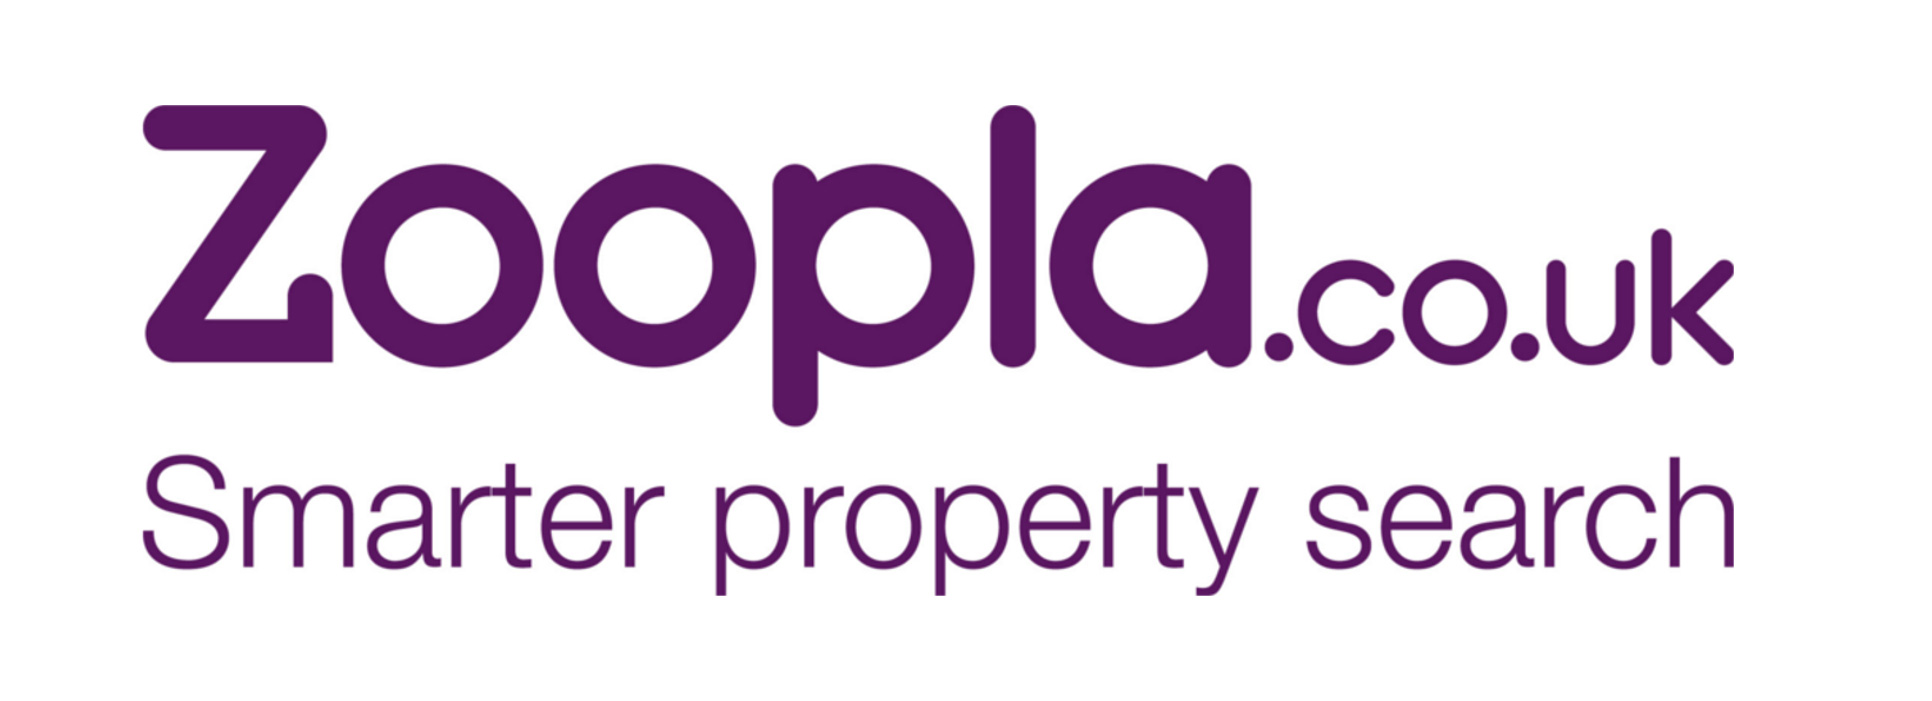 zoopla_online_strap_pw.jpg